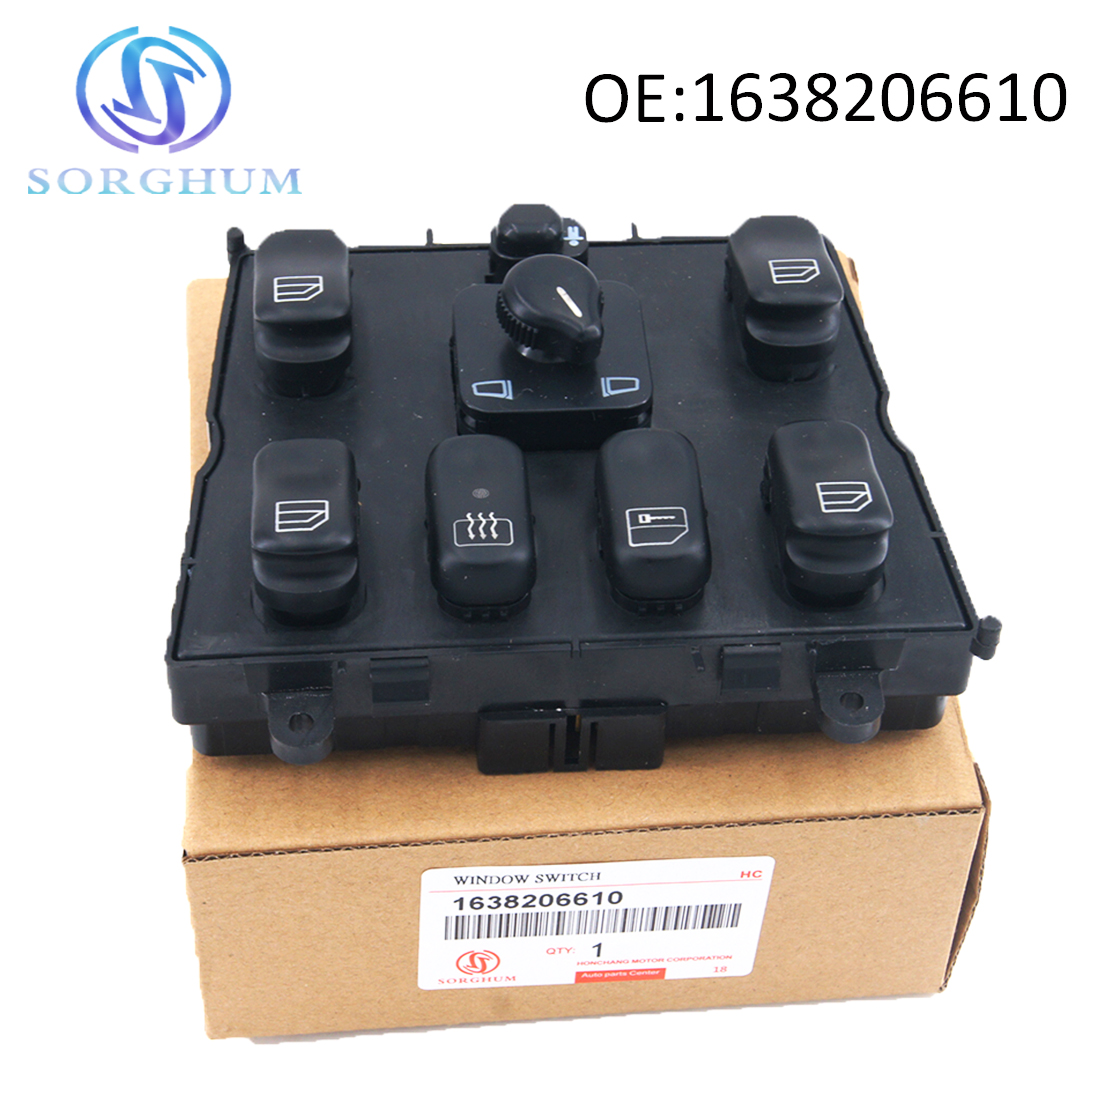 New 1638206610 A1638206610 Power Window Master Switch for 1998-2005 Mercedes-Benz ML320 <font><b>W163</b></font> ML400 ML430 ML500 A 163 820 6610 image